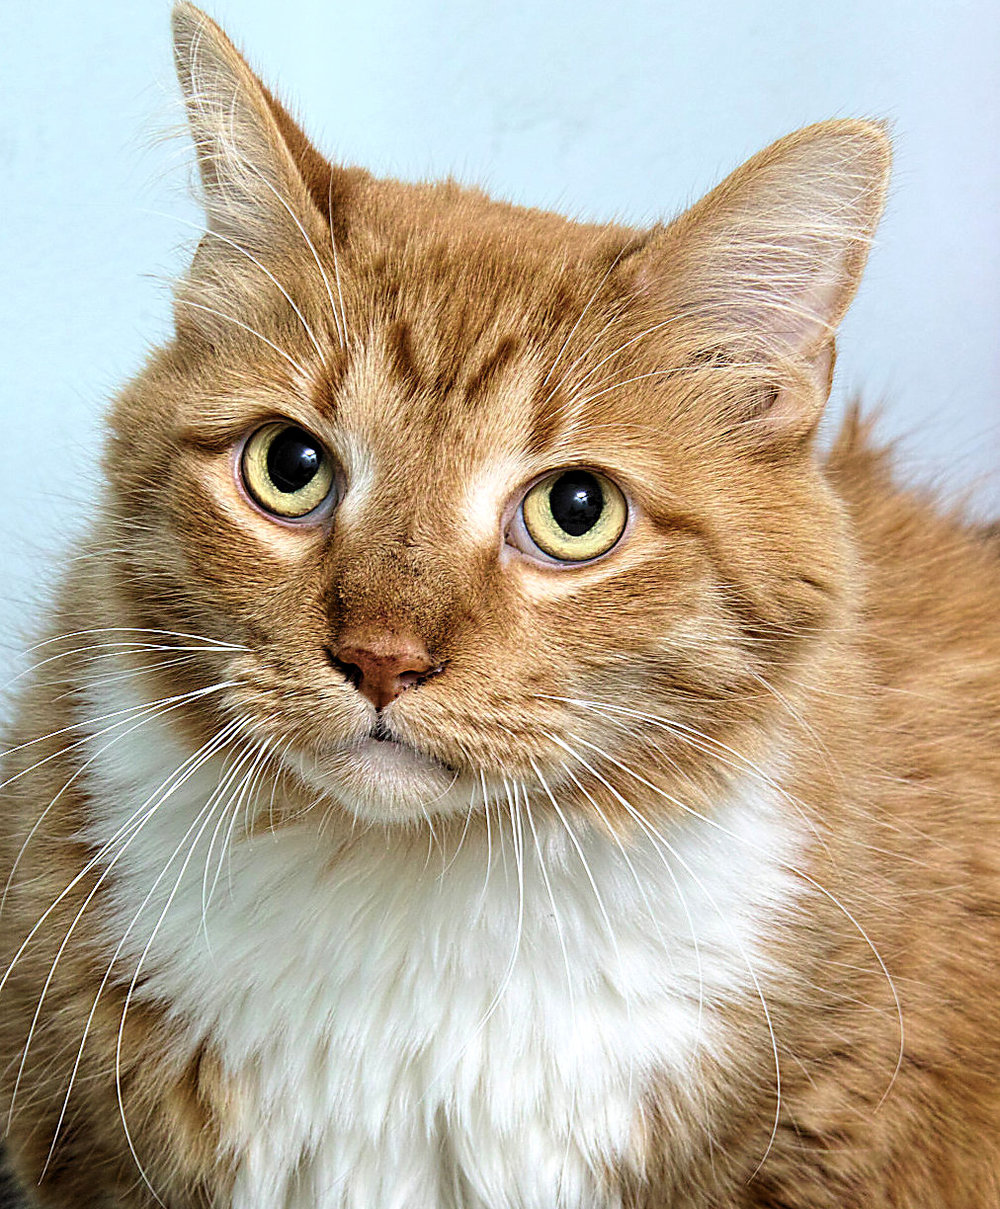 Kitty is one of our older guys, he is 8 years young. He is an elegant, mature cat more reserved than outgoing. Kitty will come to people on his terms. He does enjoy being petted, but we believe he would do best in a quieter home without children.